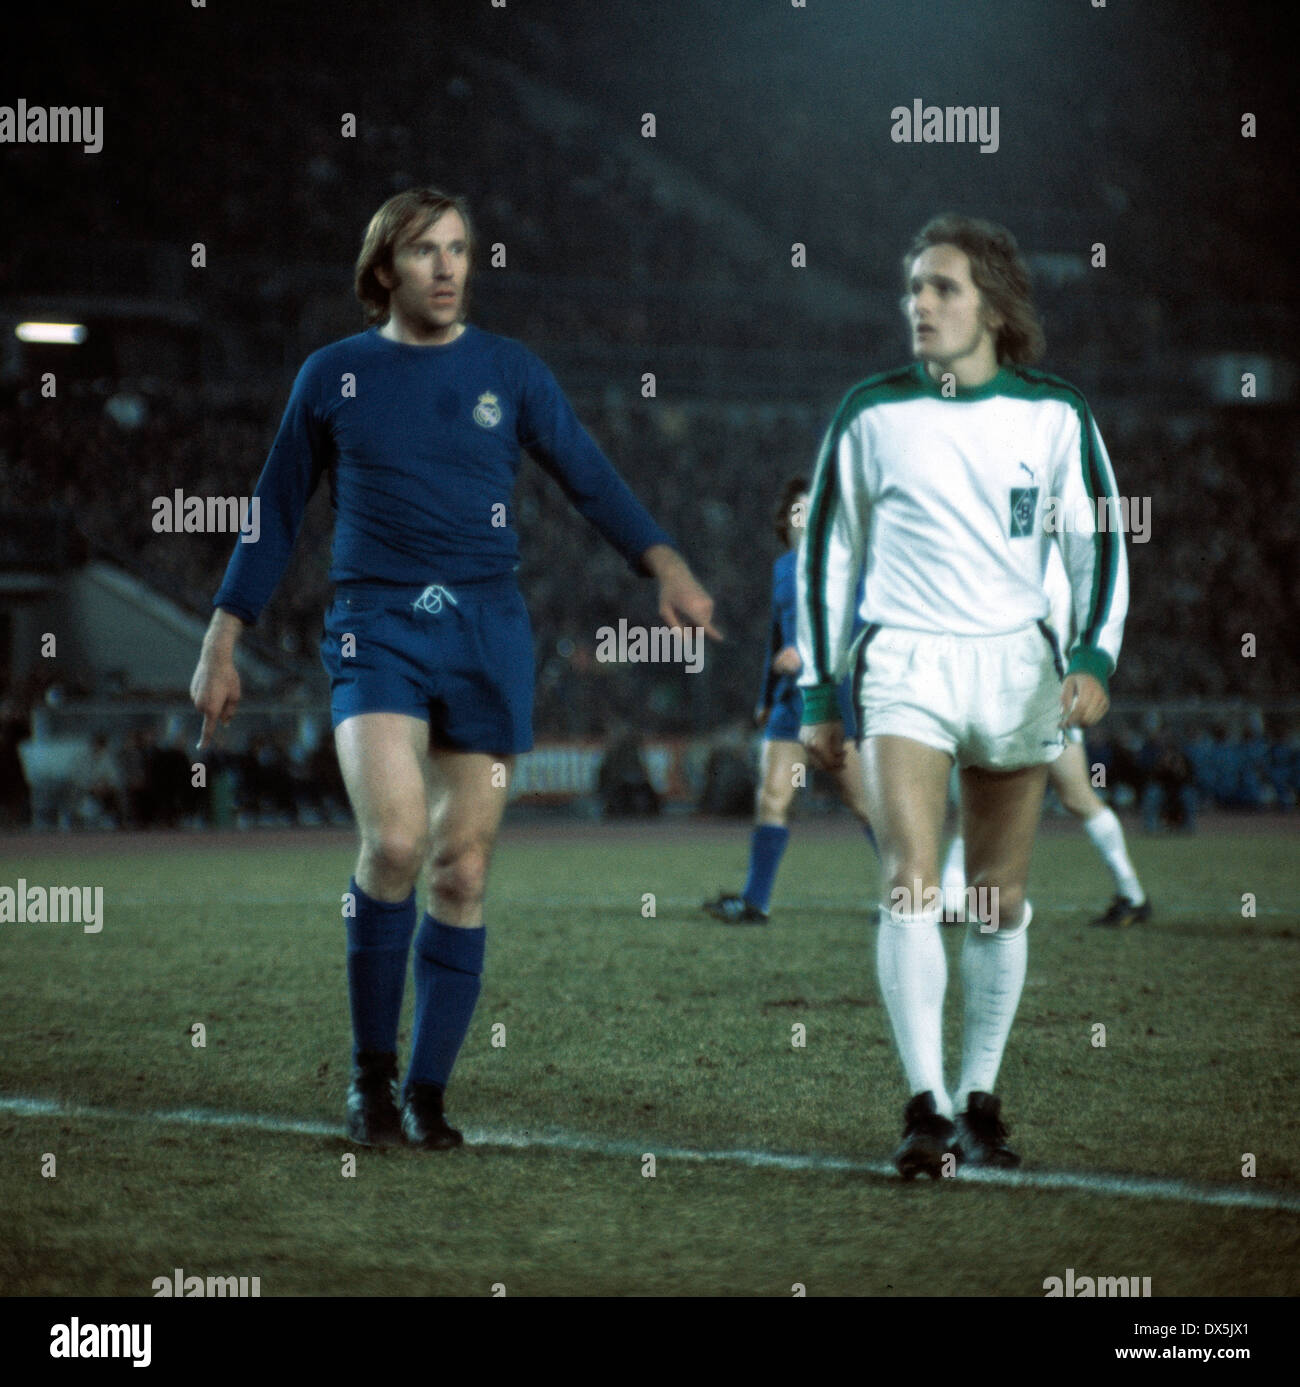 football, European Champion Clubs Cup, Champions League, 1975/1976, quarterfinal, first leg, Rhine Stadium Duesseldorf, Borussia Moenchengladbach versus Real Madrid 2:2, scene of the match, Guenter Netzer (Real) left and Allan Simonsen (MG) - Stock Image